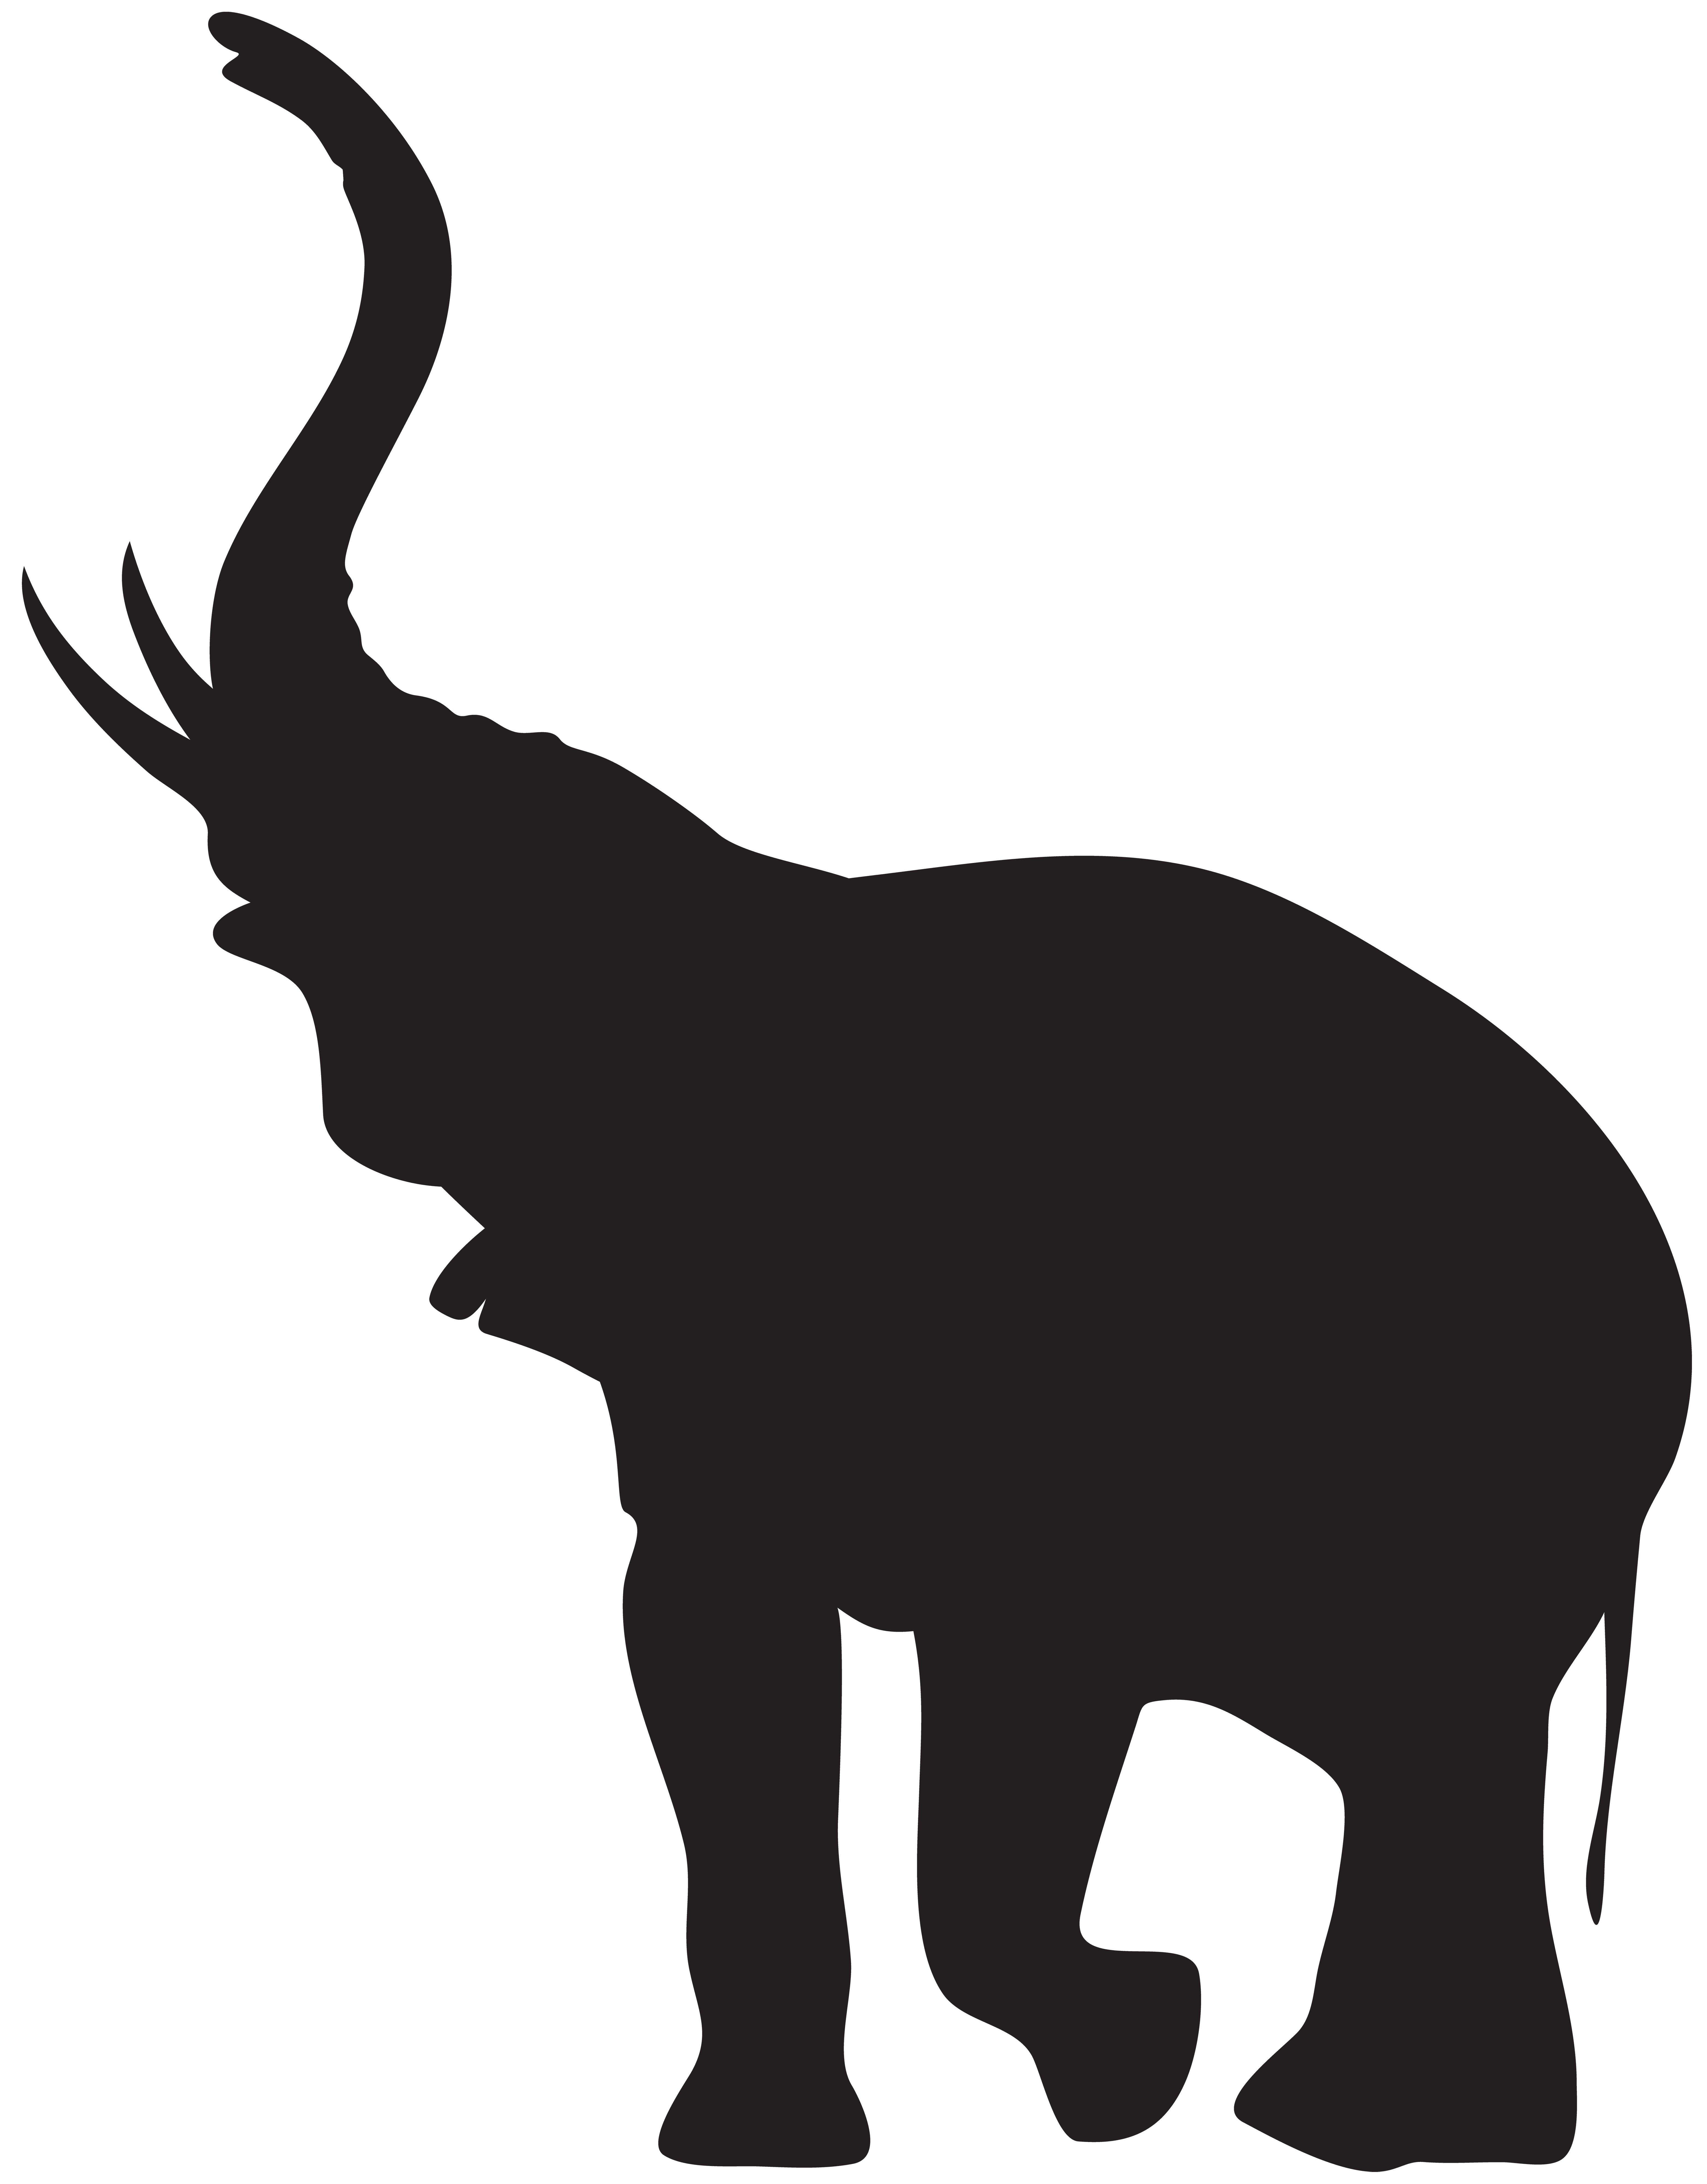 Elephant with Trunk Raised Silhouette PNG Clip Art.